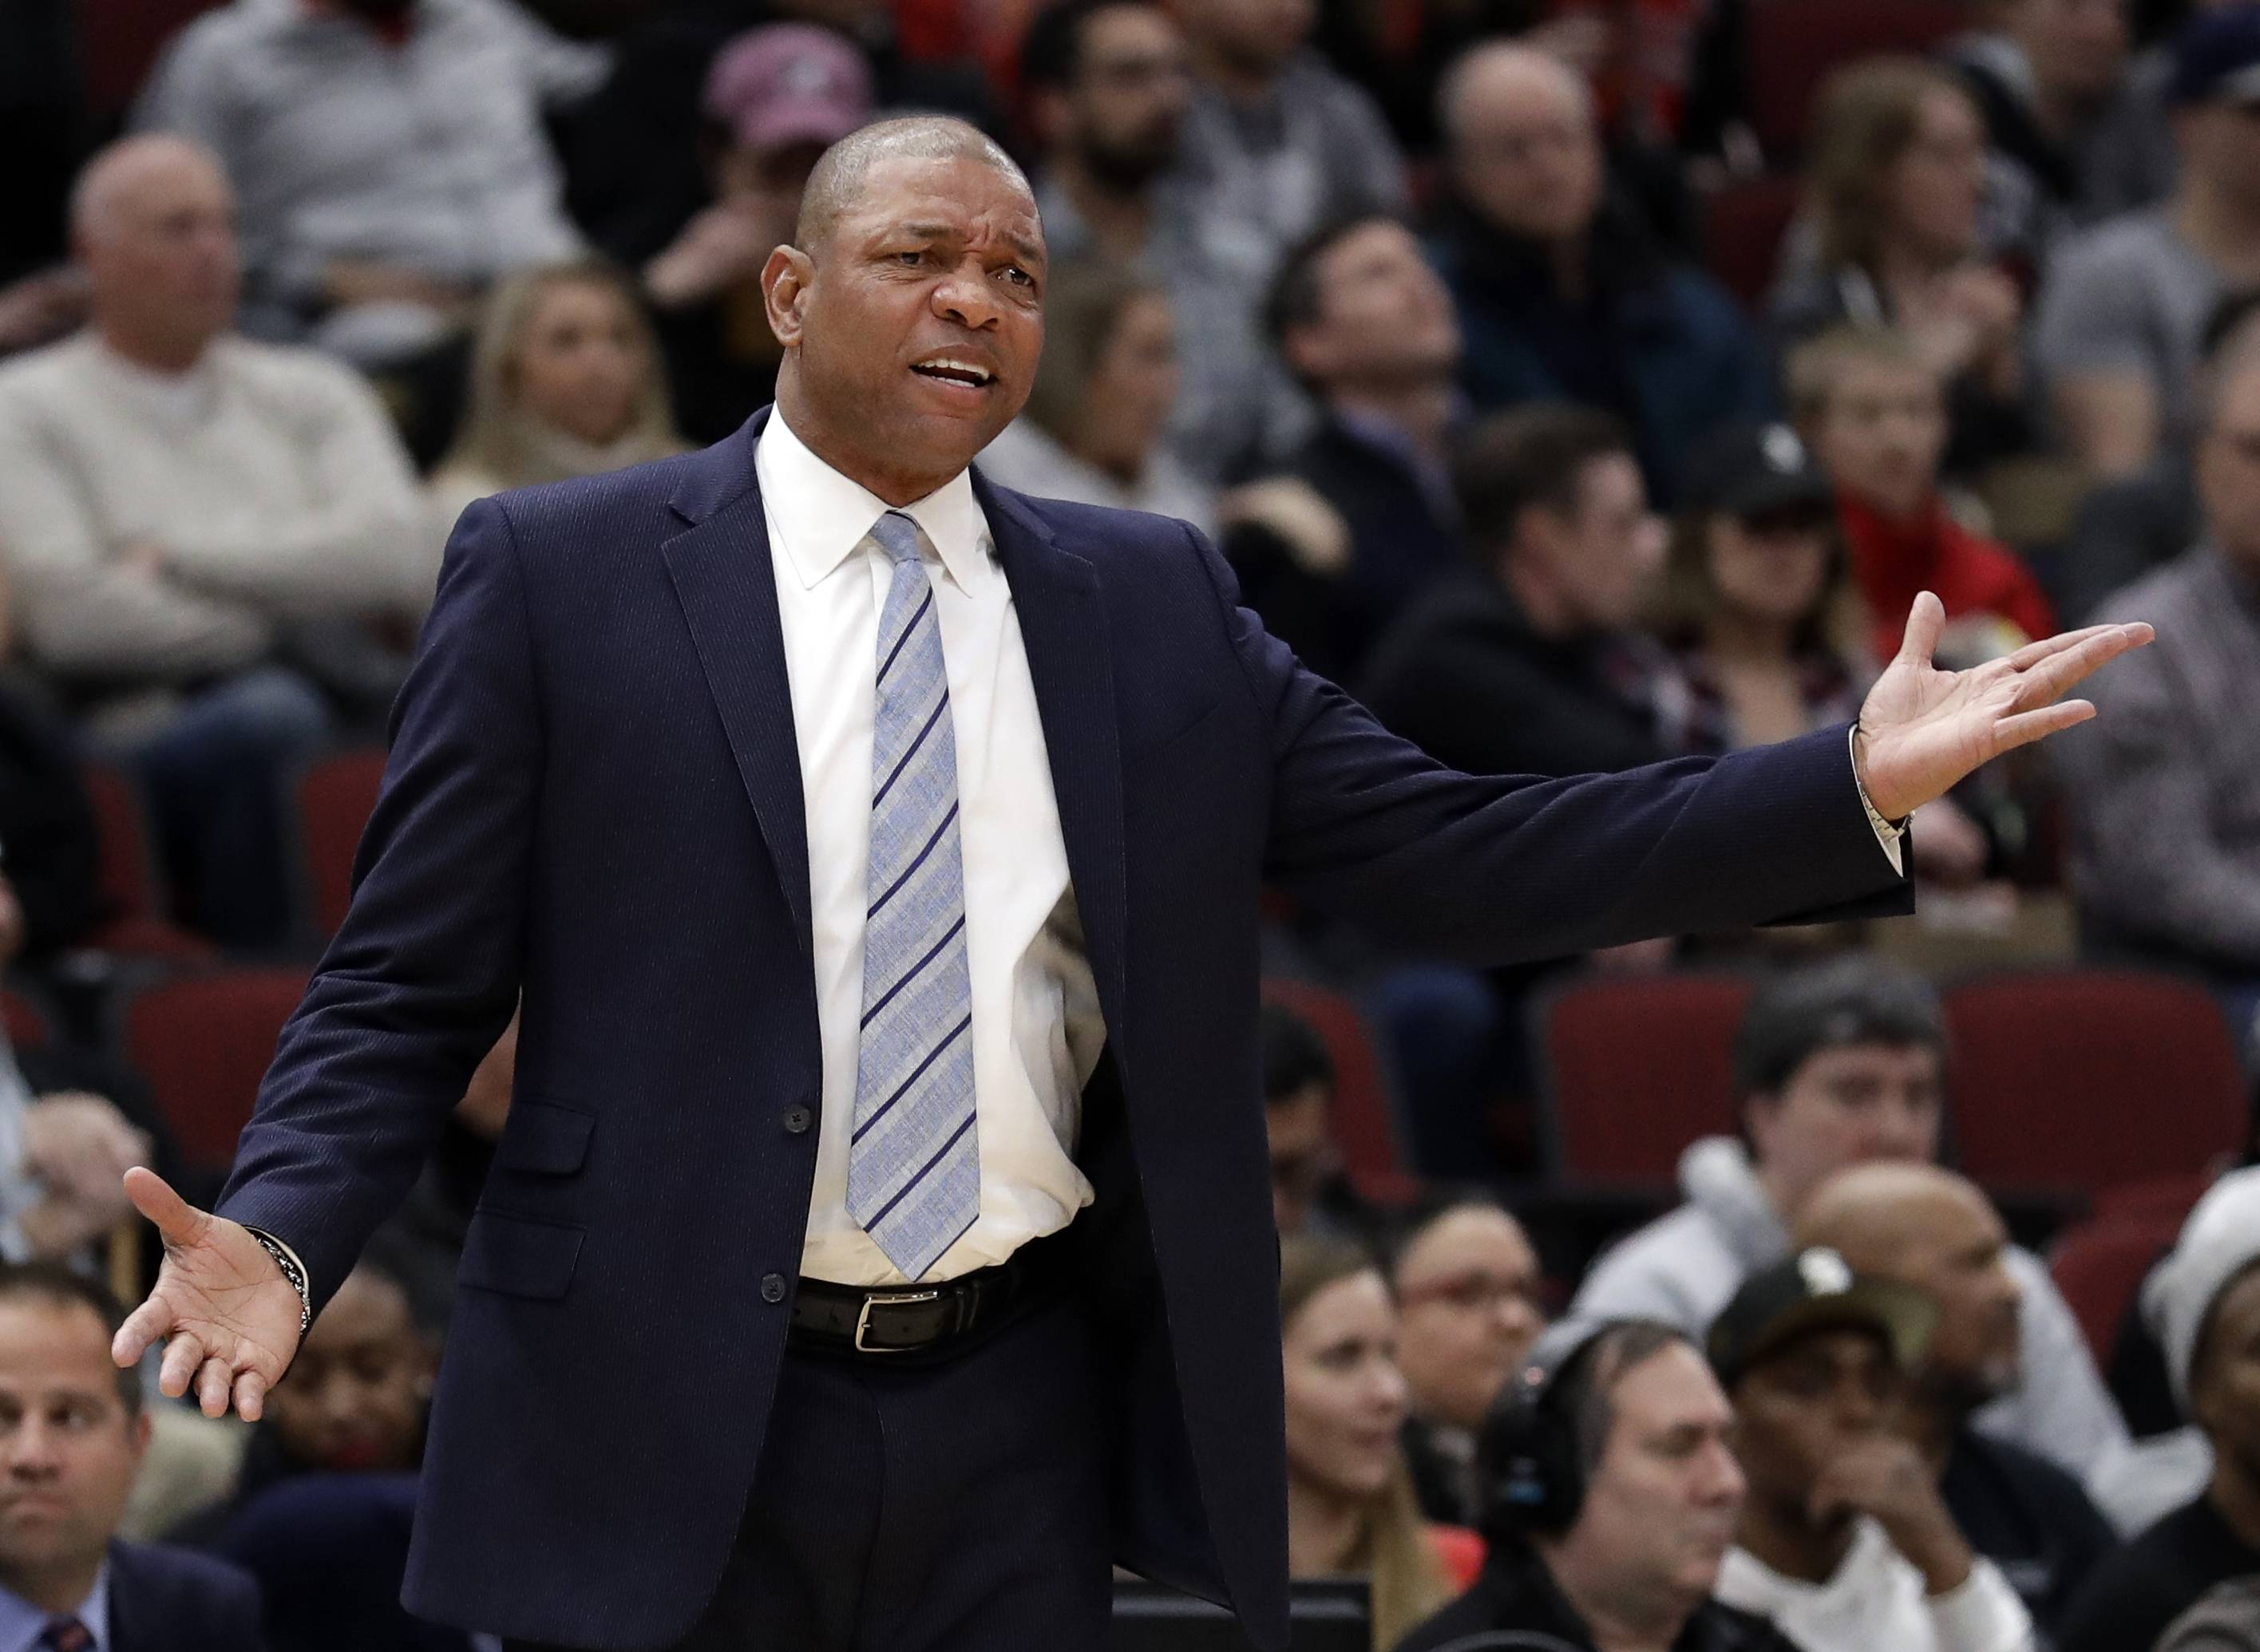 Los Angeles Clippers coach Doc Rivers had plenty of Chicago stories to share before his lone regular-season game at the United Center. For starters, he's glad fellow Chicago native Patrick Beverly is on his side.